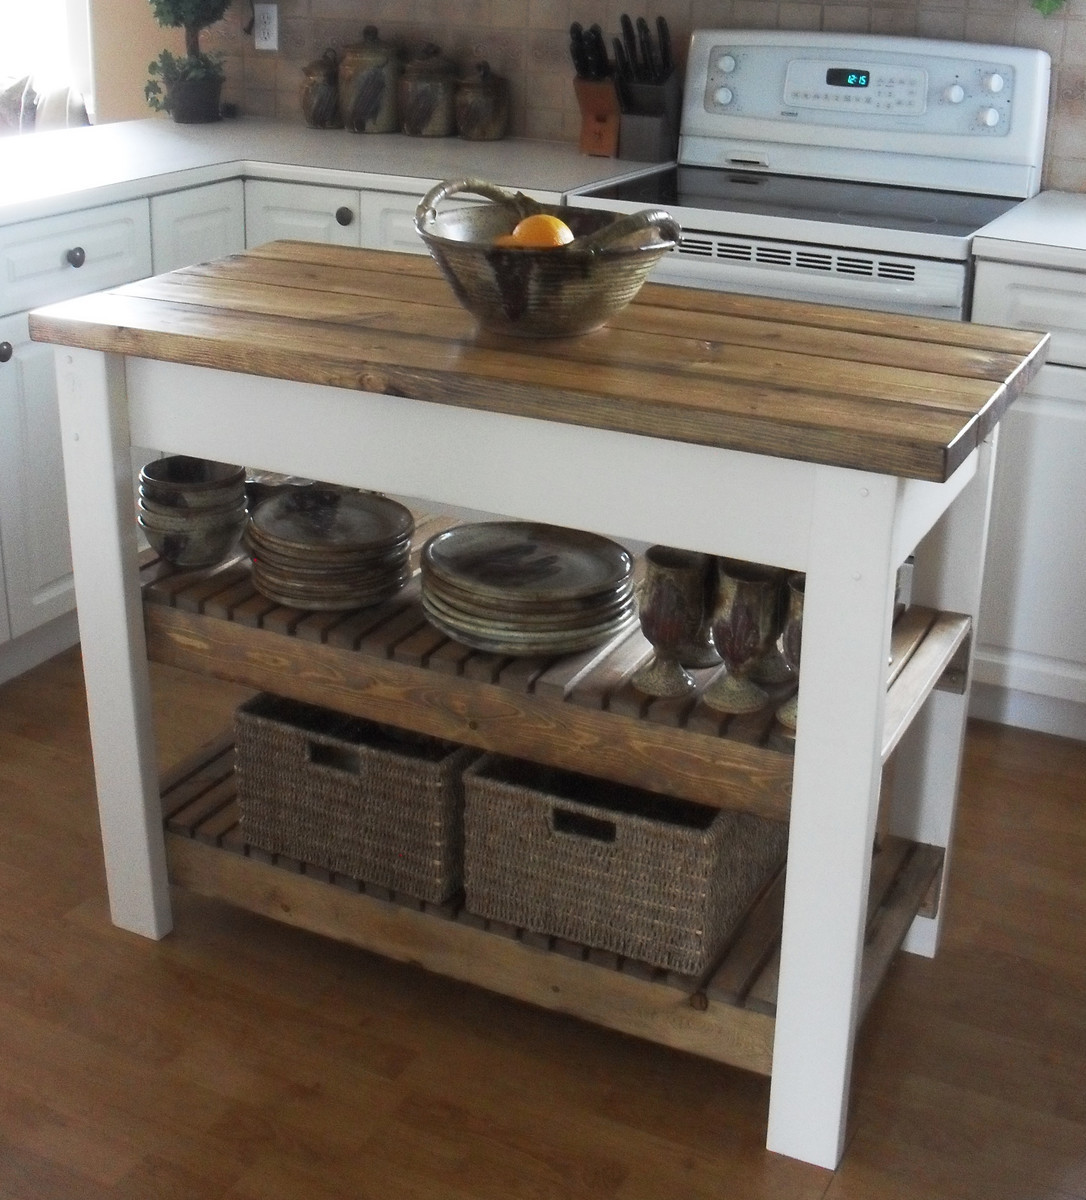 Best ideas about DIY Kitchen Island With Seating . Save or Pin Ana White Now.